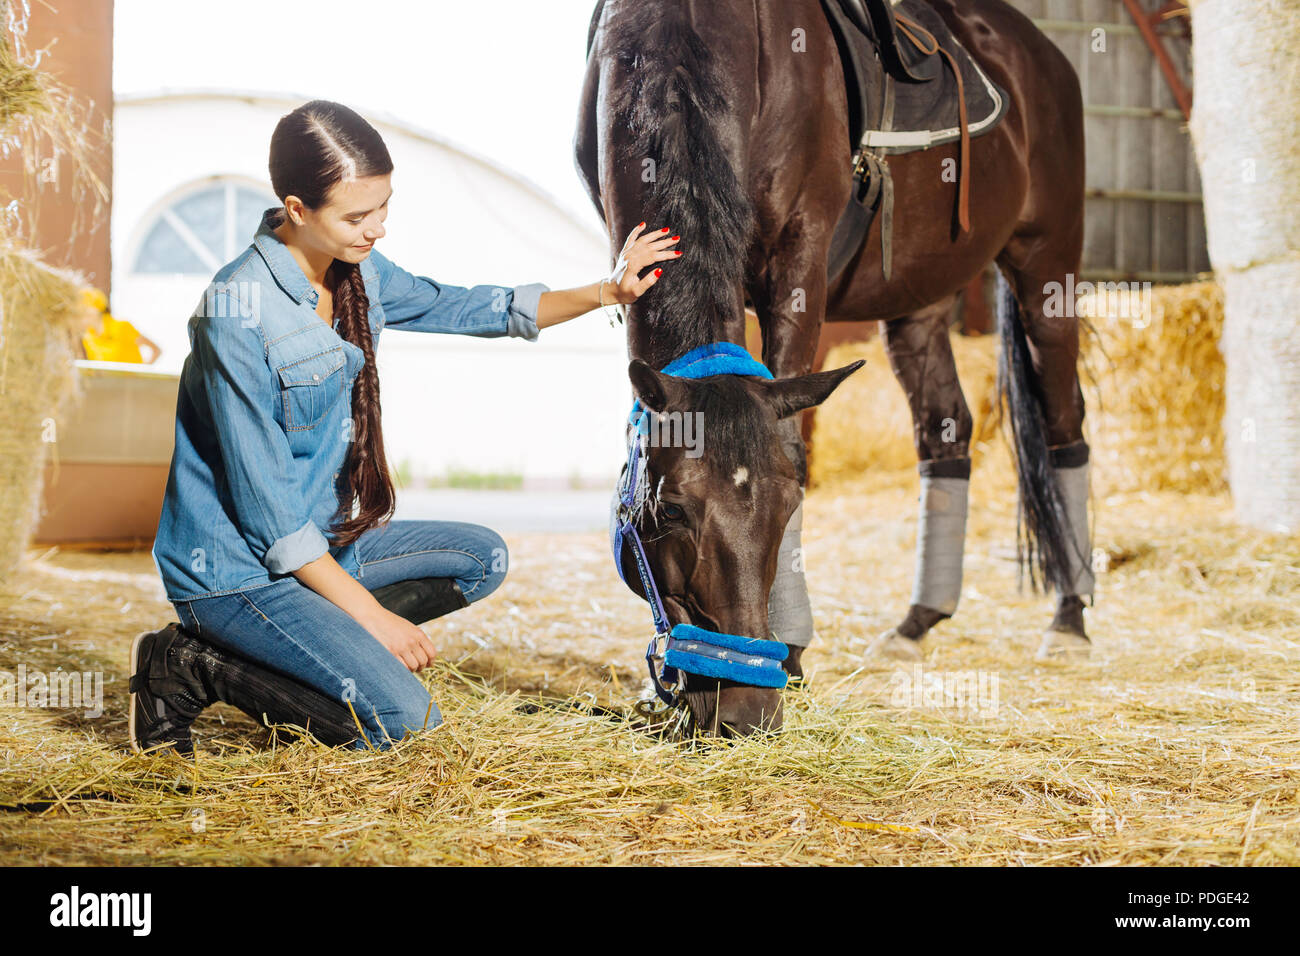 Dark-haired horsewoman with long braid visiting stable and horse - Stock Image